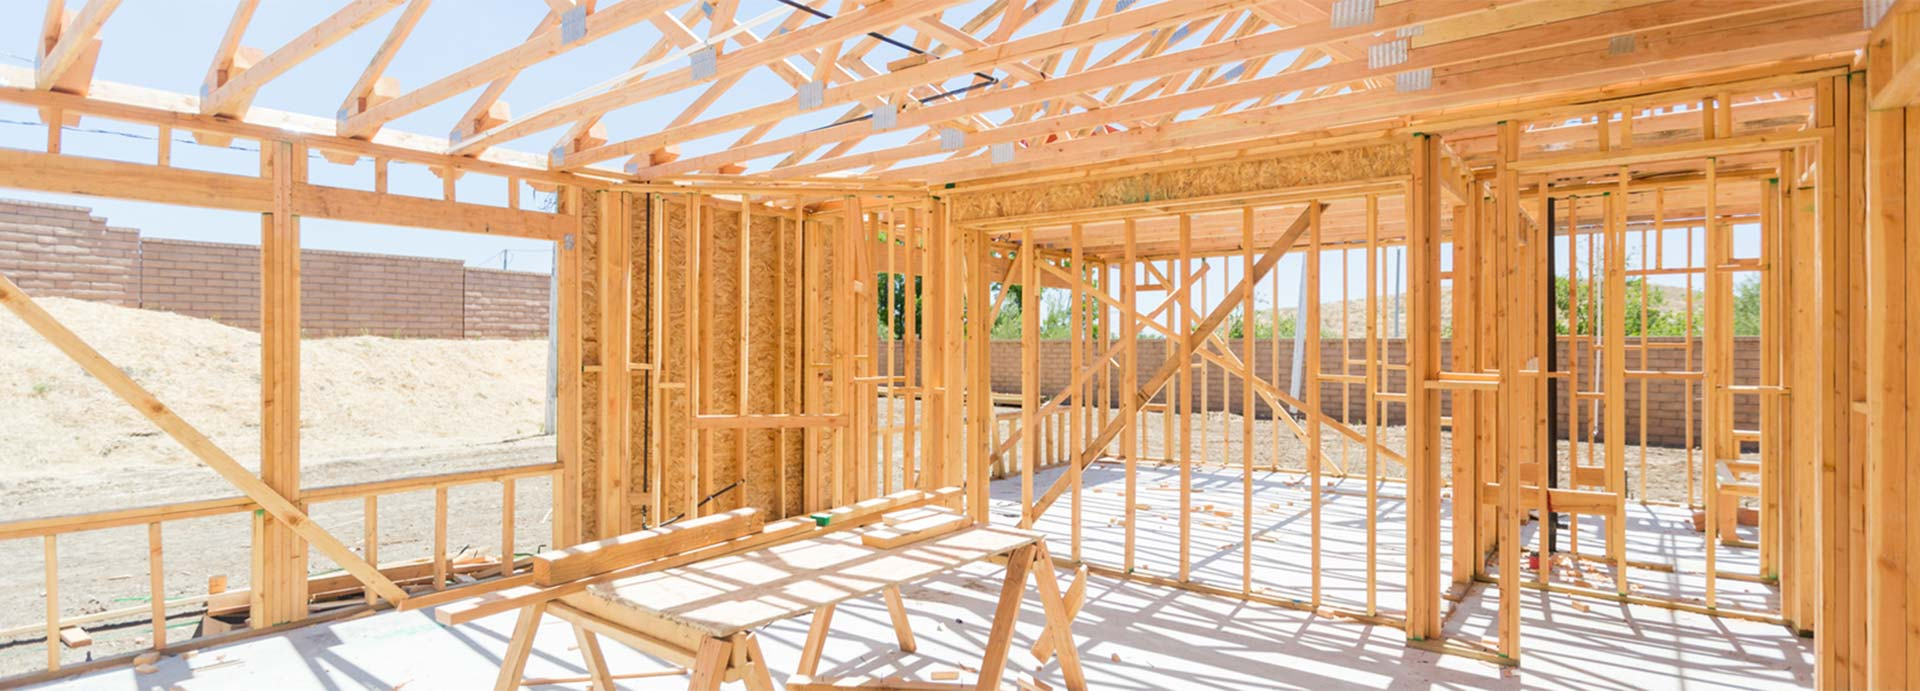 Commercial Wood And Metal Framing